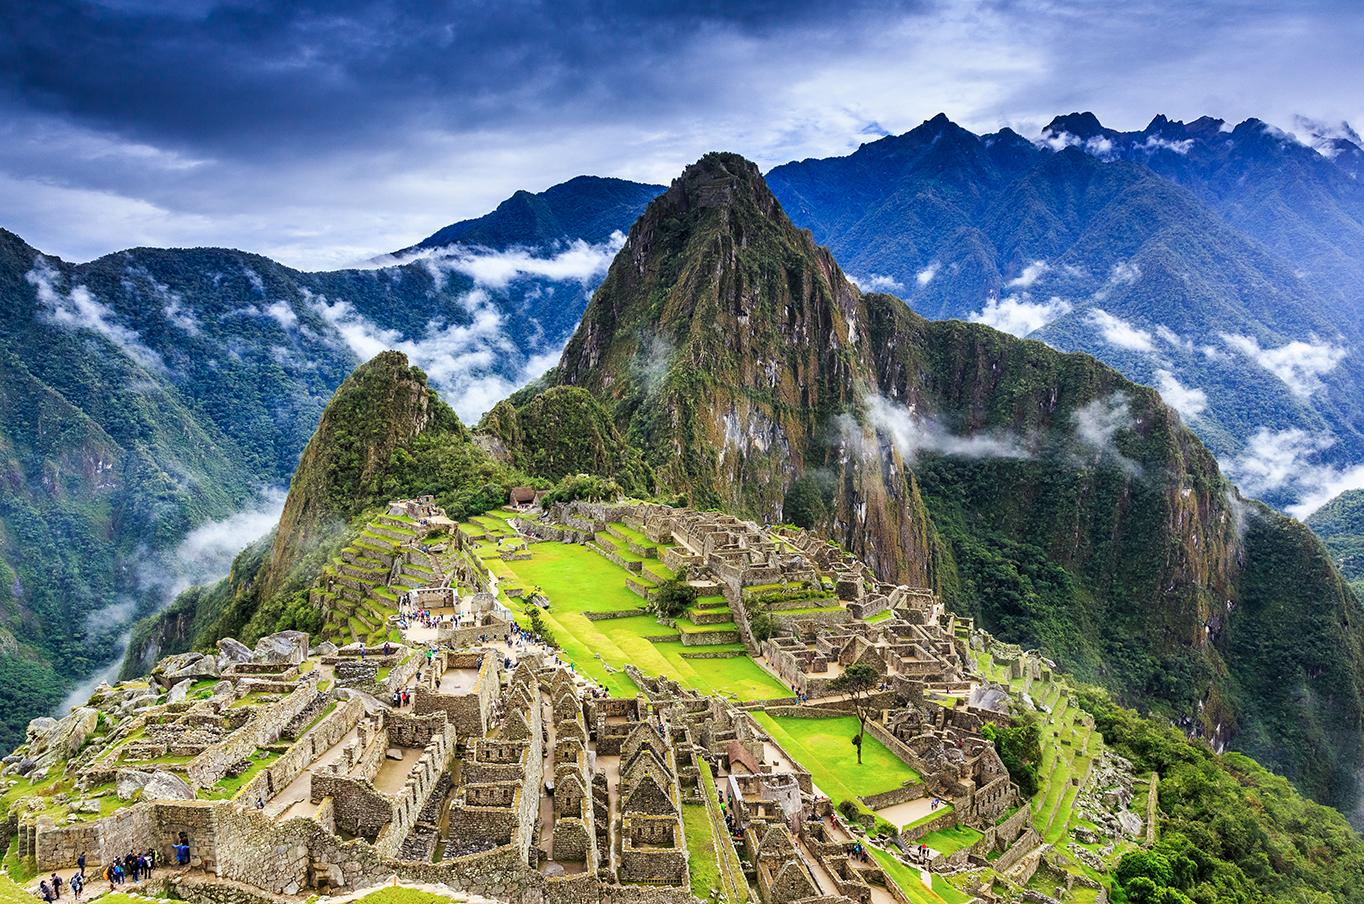 Hike up to the famous ancient city of Machu Picchu with Peru tours and excursions